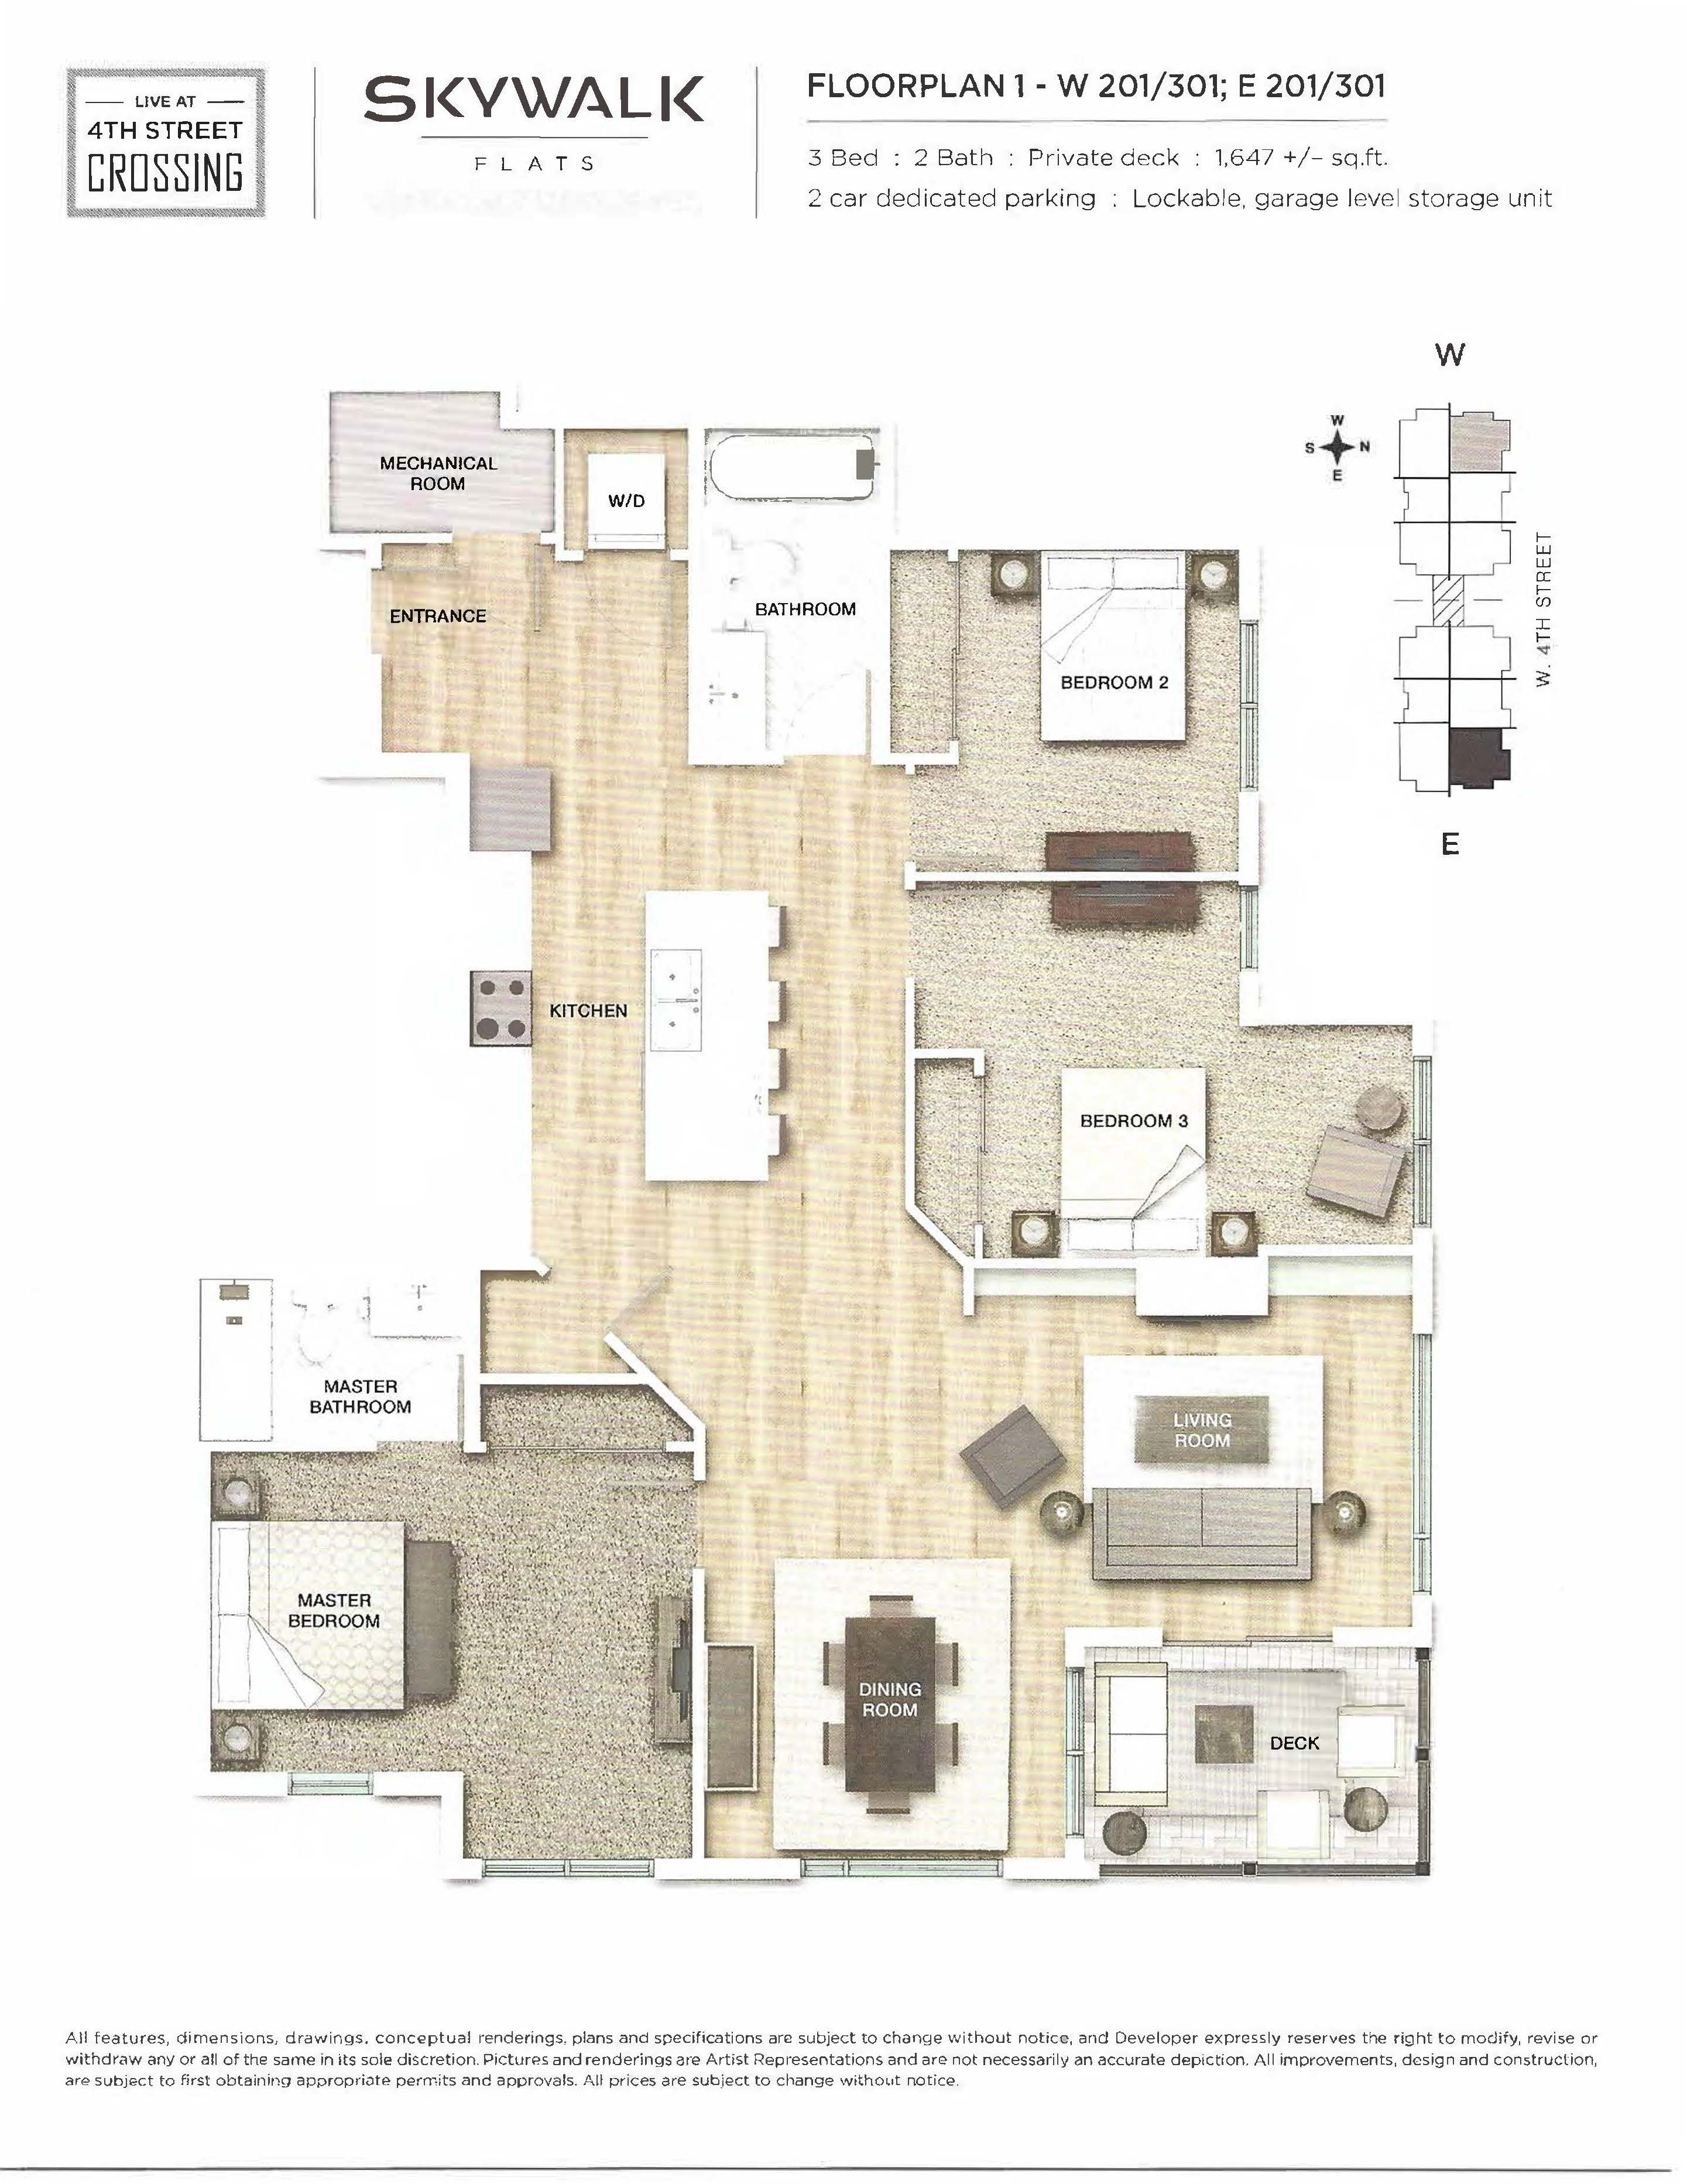 Fourth Street Crossing - Skywalk Flats - Floorplan 1